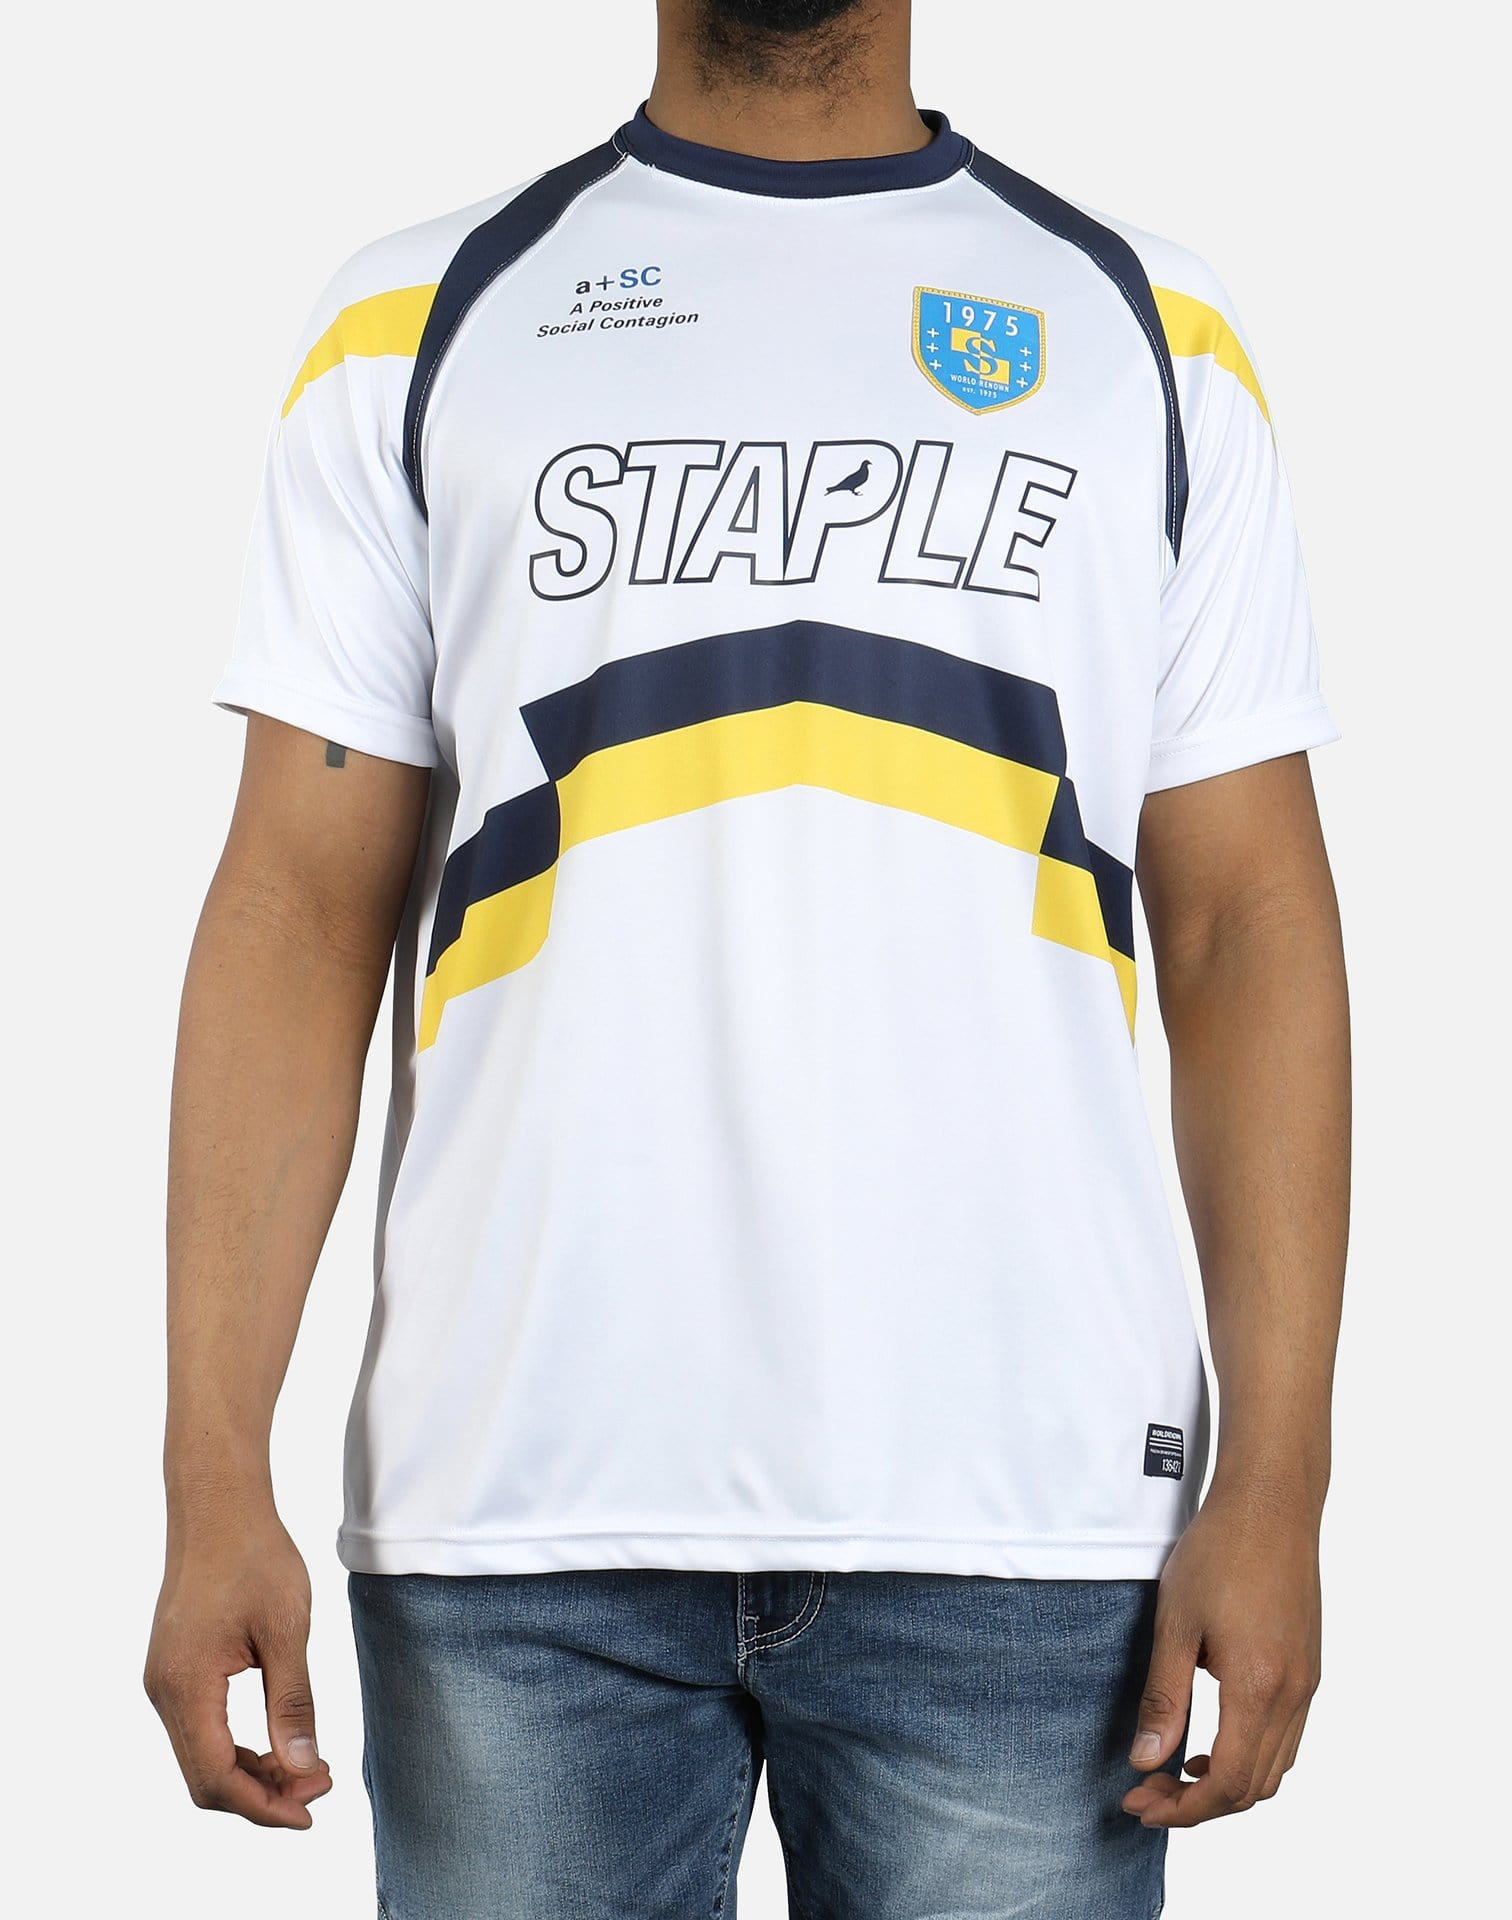 Staple Stripes Soccer Jersey